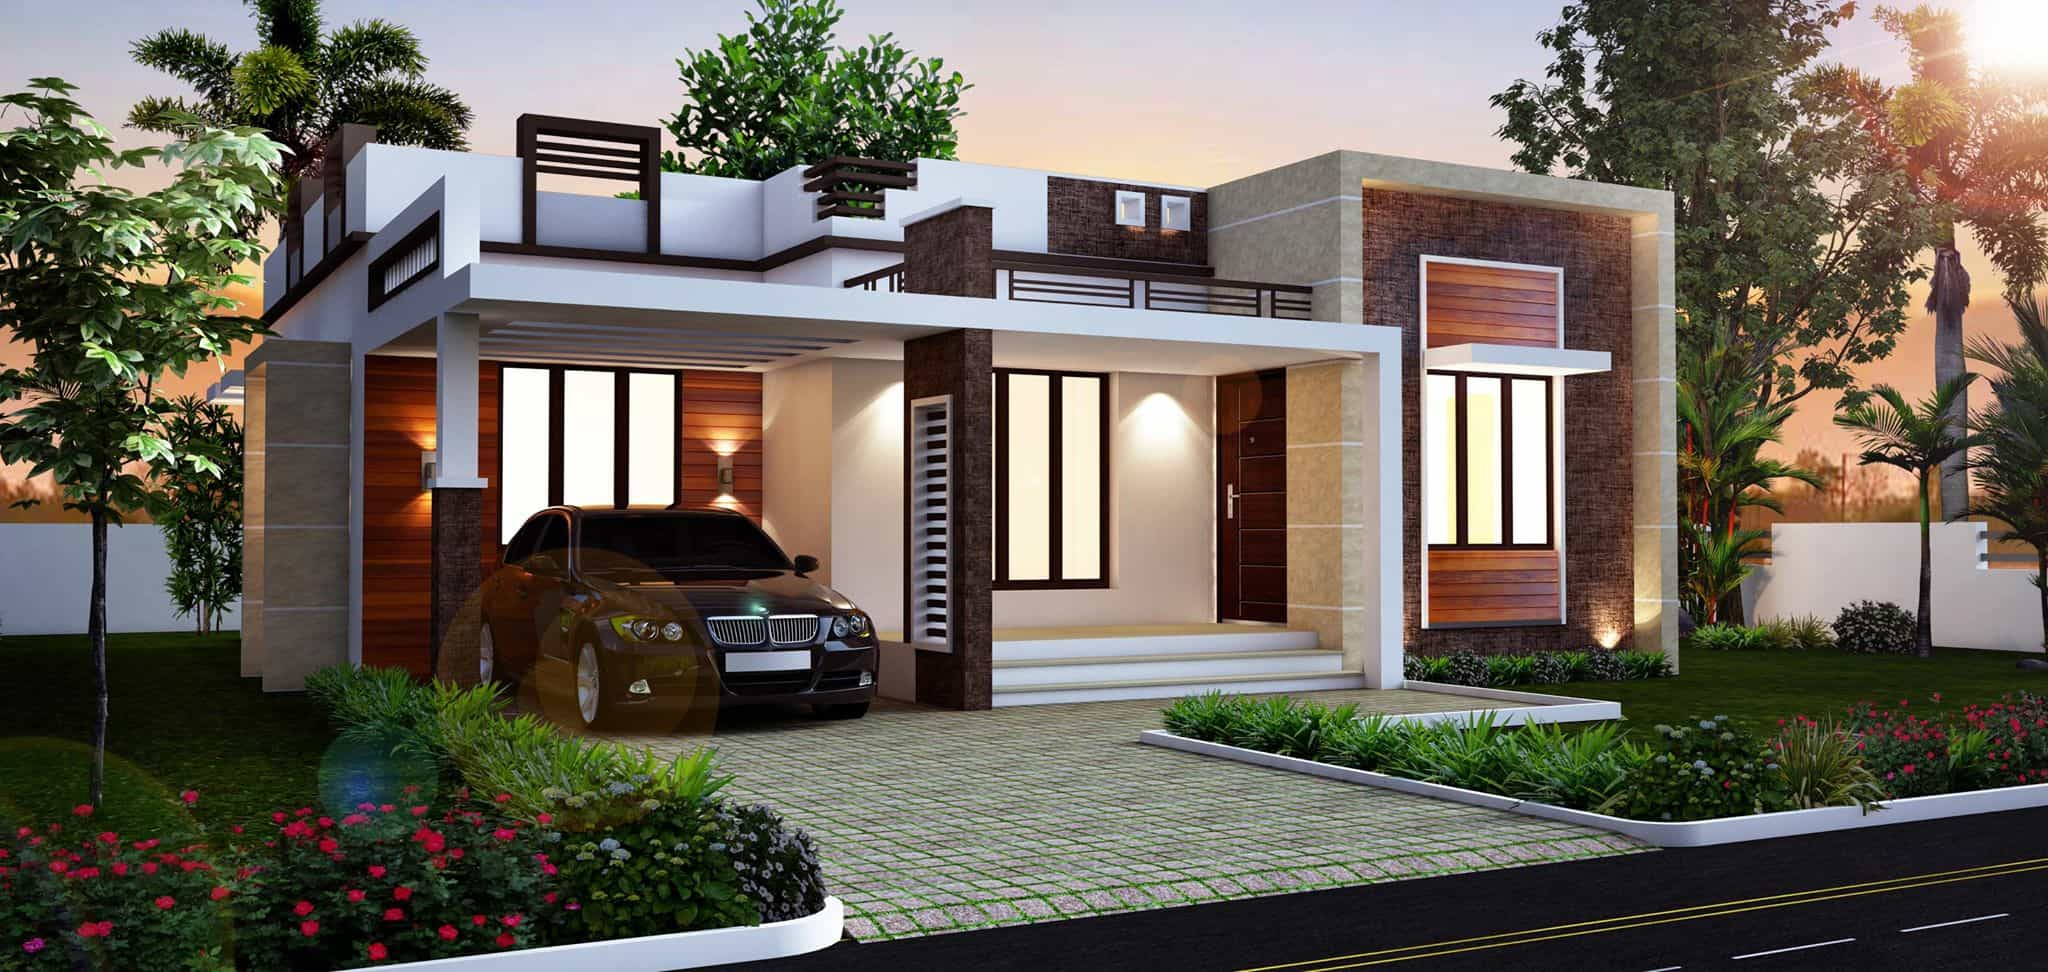 A rustic, windswept house overlooking the atlantic ocean. Kerala Home Design & House Plans   Indian & Budget Models